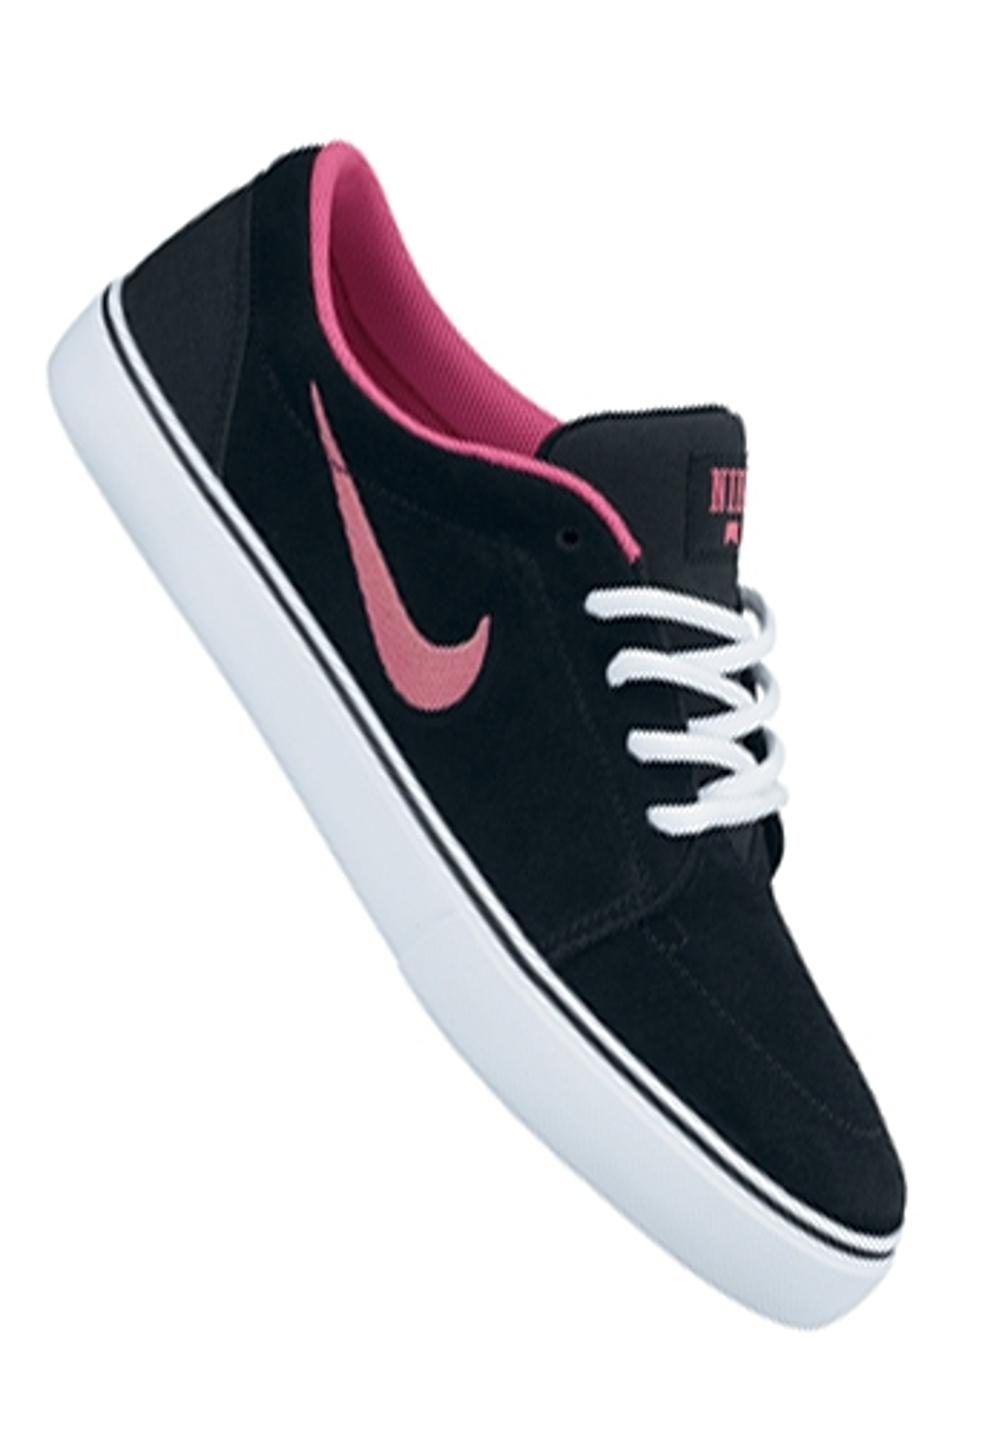 official photos 4a6f8 7d3ca NIKE SB Satire - Sneakers for Men - Black - Planet Sports